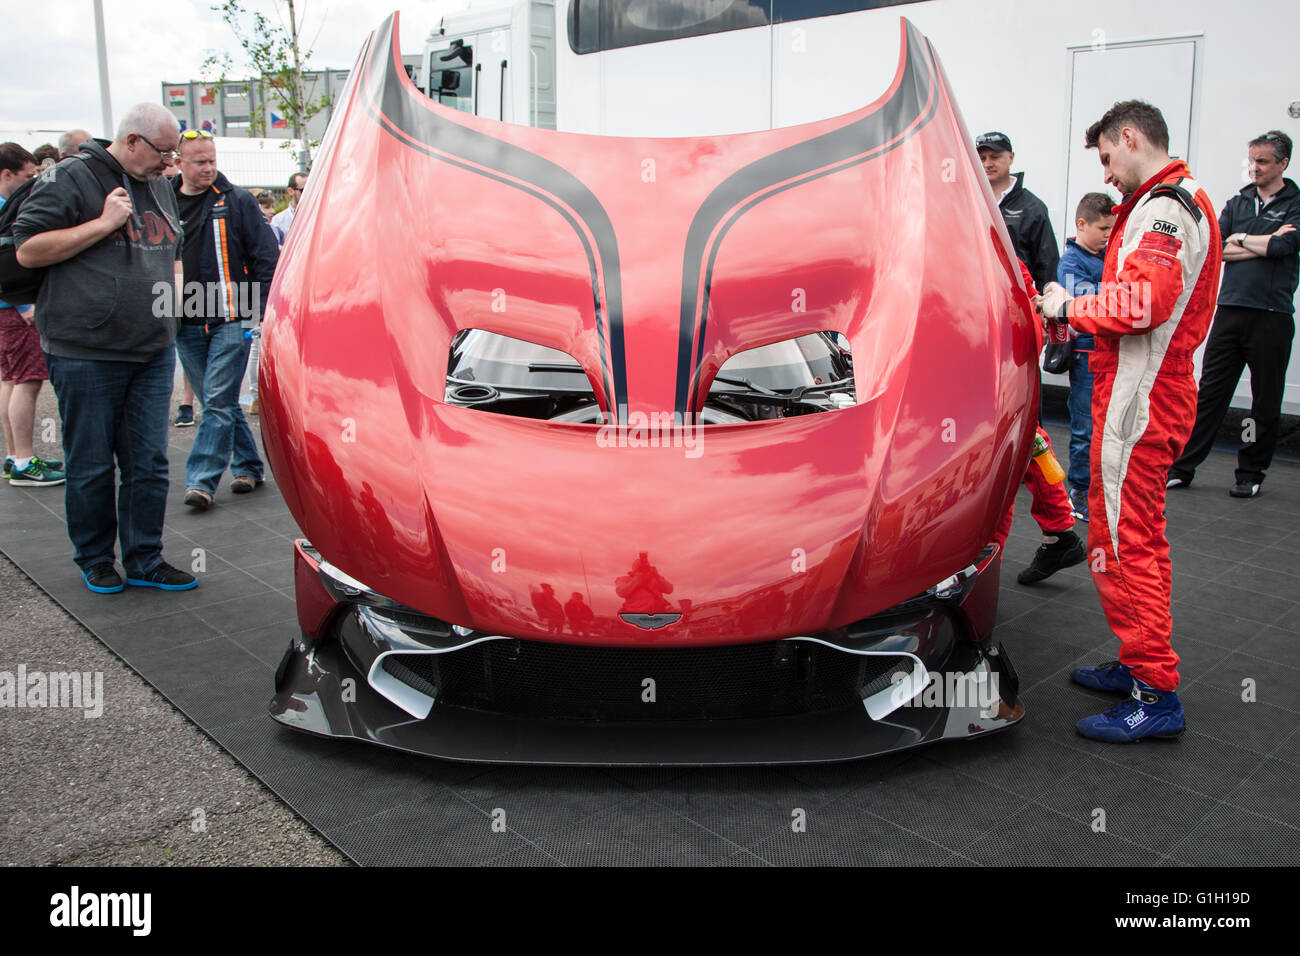 Silverstone, UK. 15th May, 2016. Aston Martin Vulcan on display in the paddock and doing demonstration laps around - Stock Image